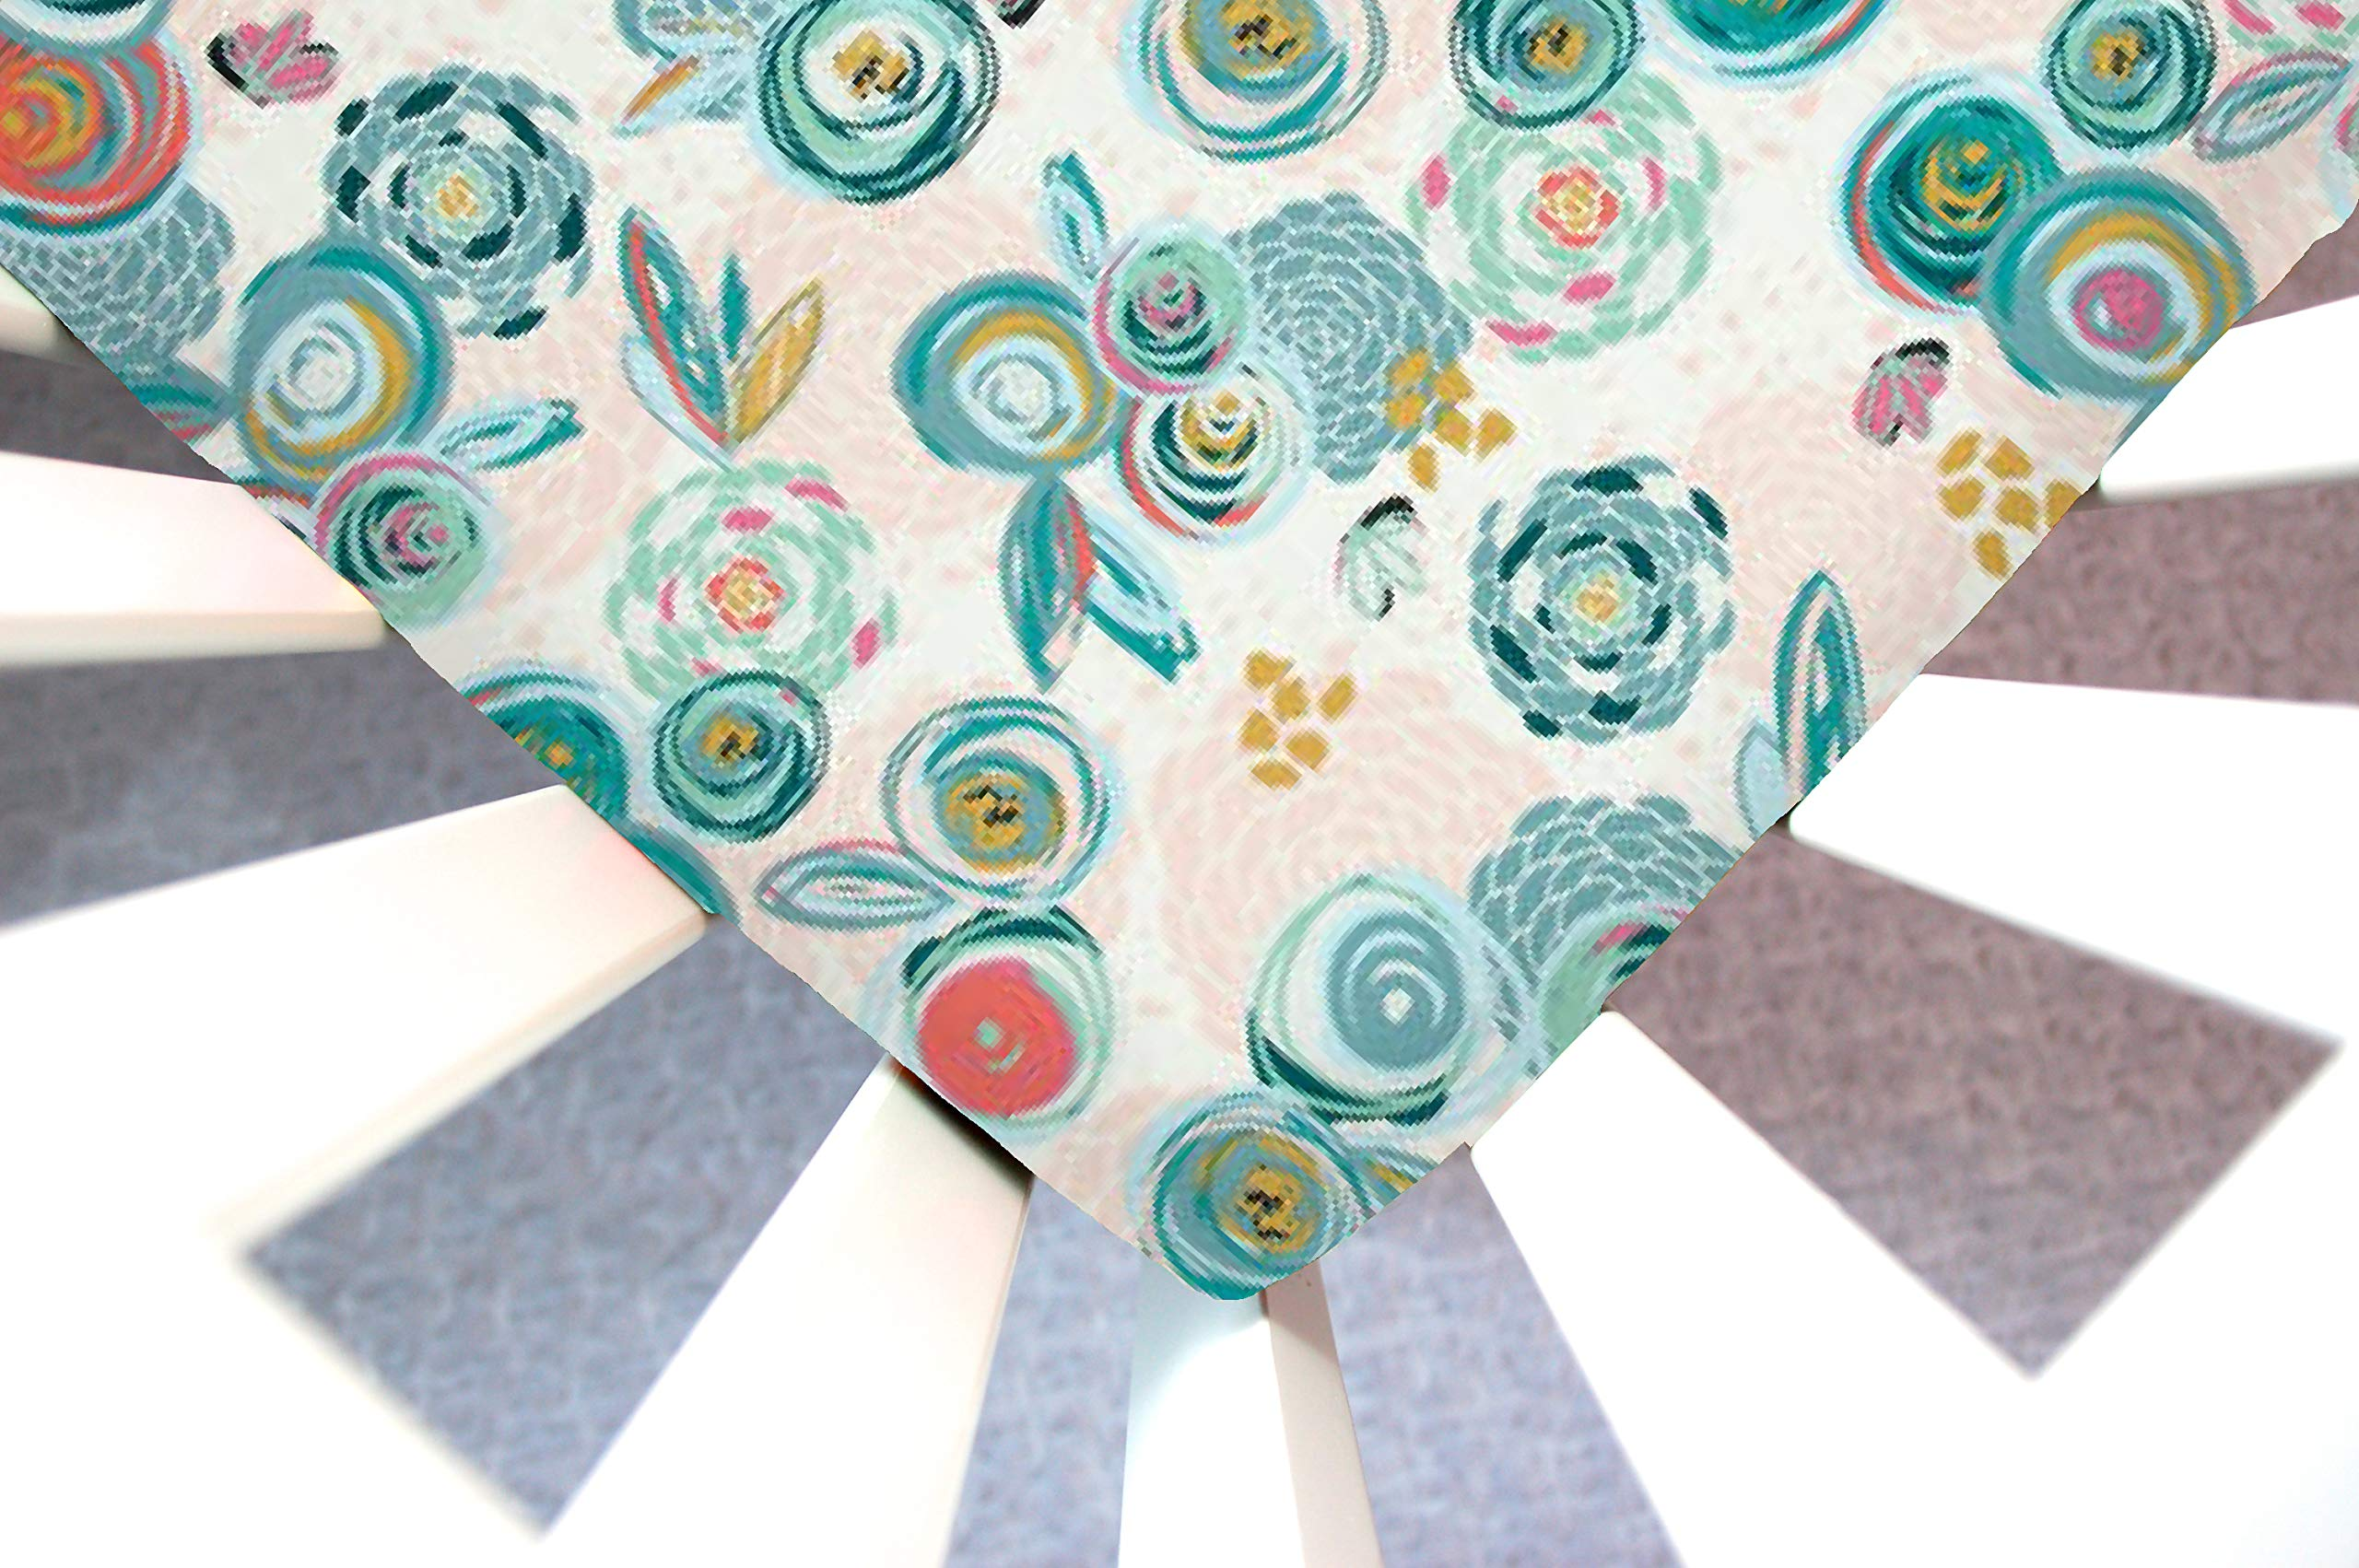 Little Moose by Liza Handmade Sheet Made to Fit Baby Bjorn Cradle in Sprayed Blooms Subtl (Whimsical Floral). This Sheet was Not Created or Sold by Baby Bjorn. by Little Moose By Liza LLC